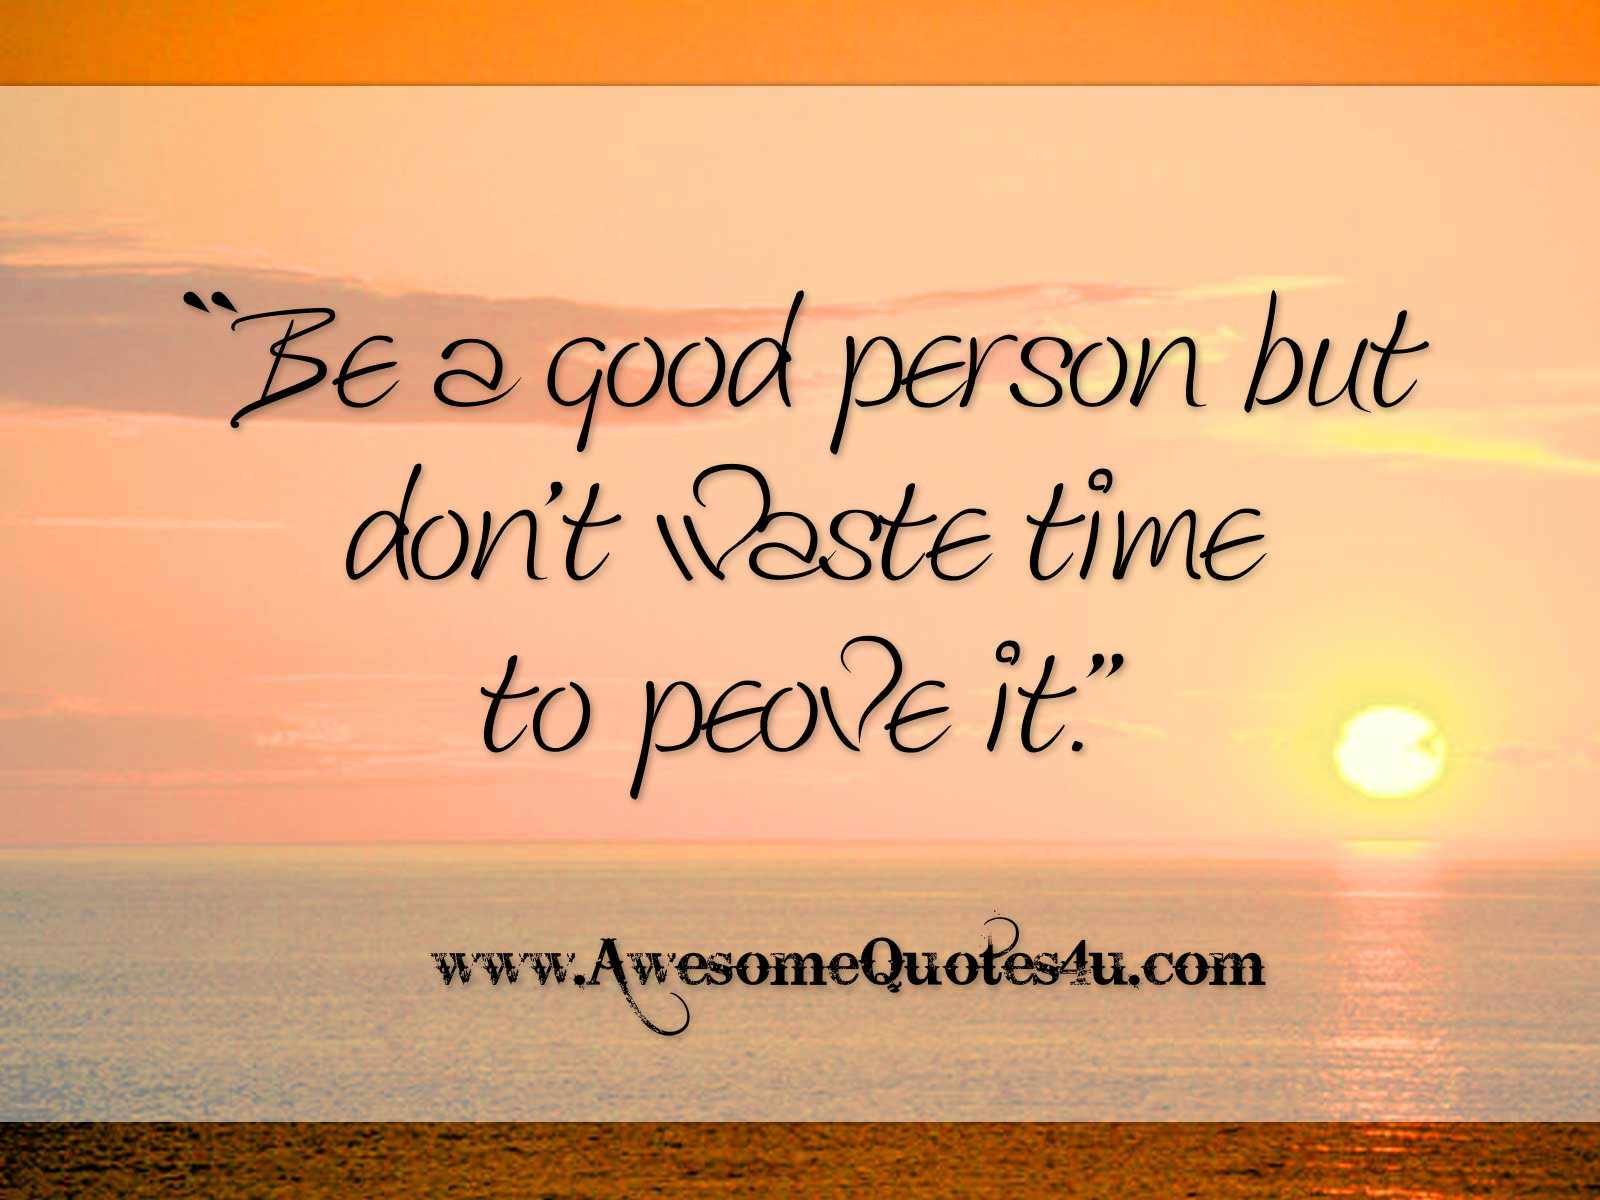 I Am A Good Person Quotes: Awesome Quotes: August 2013